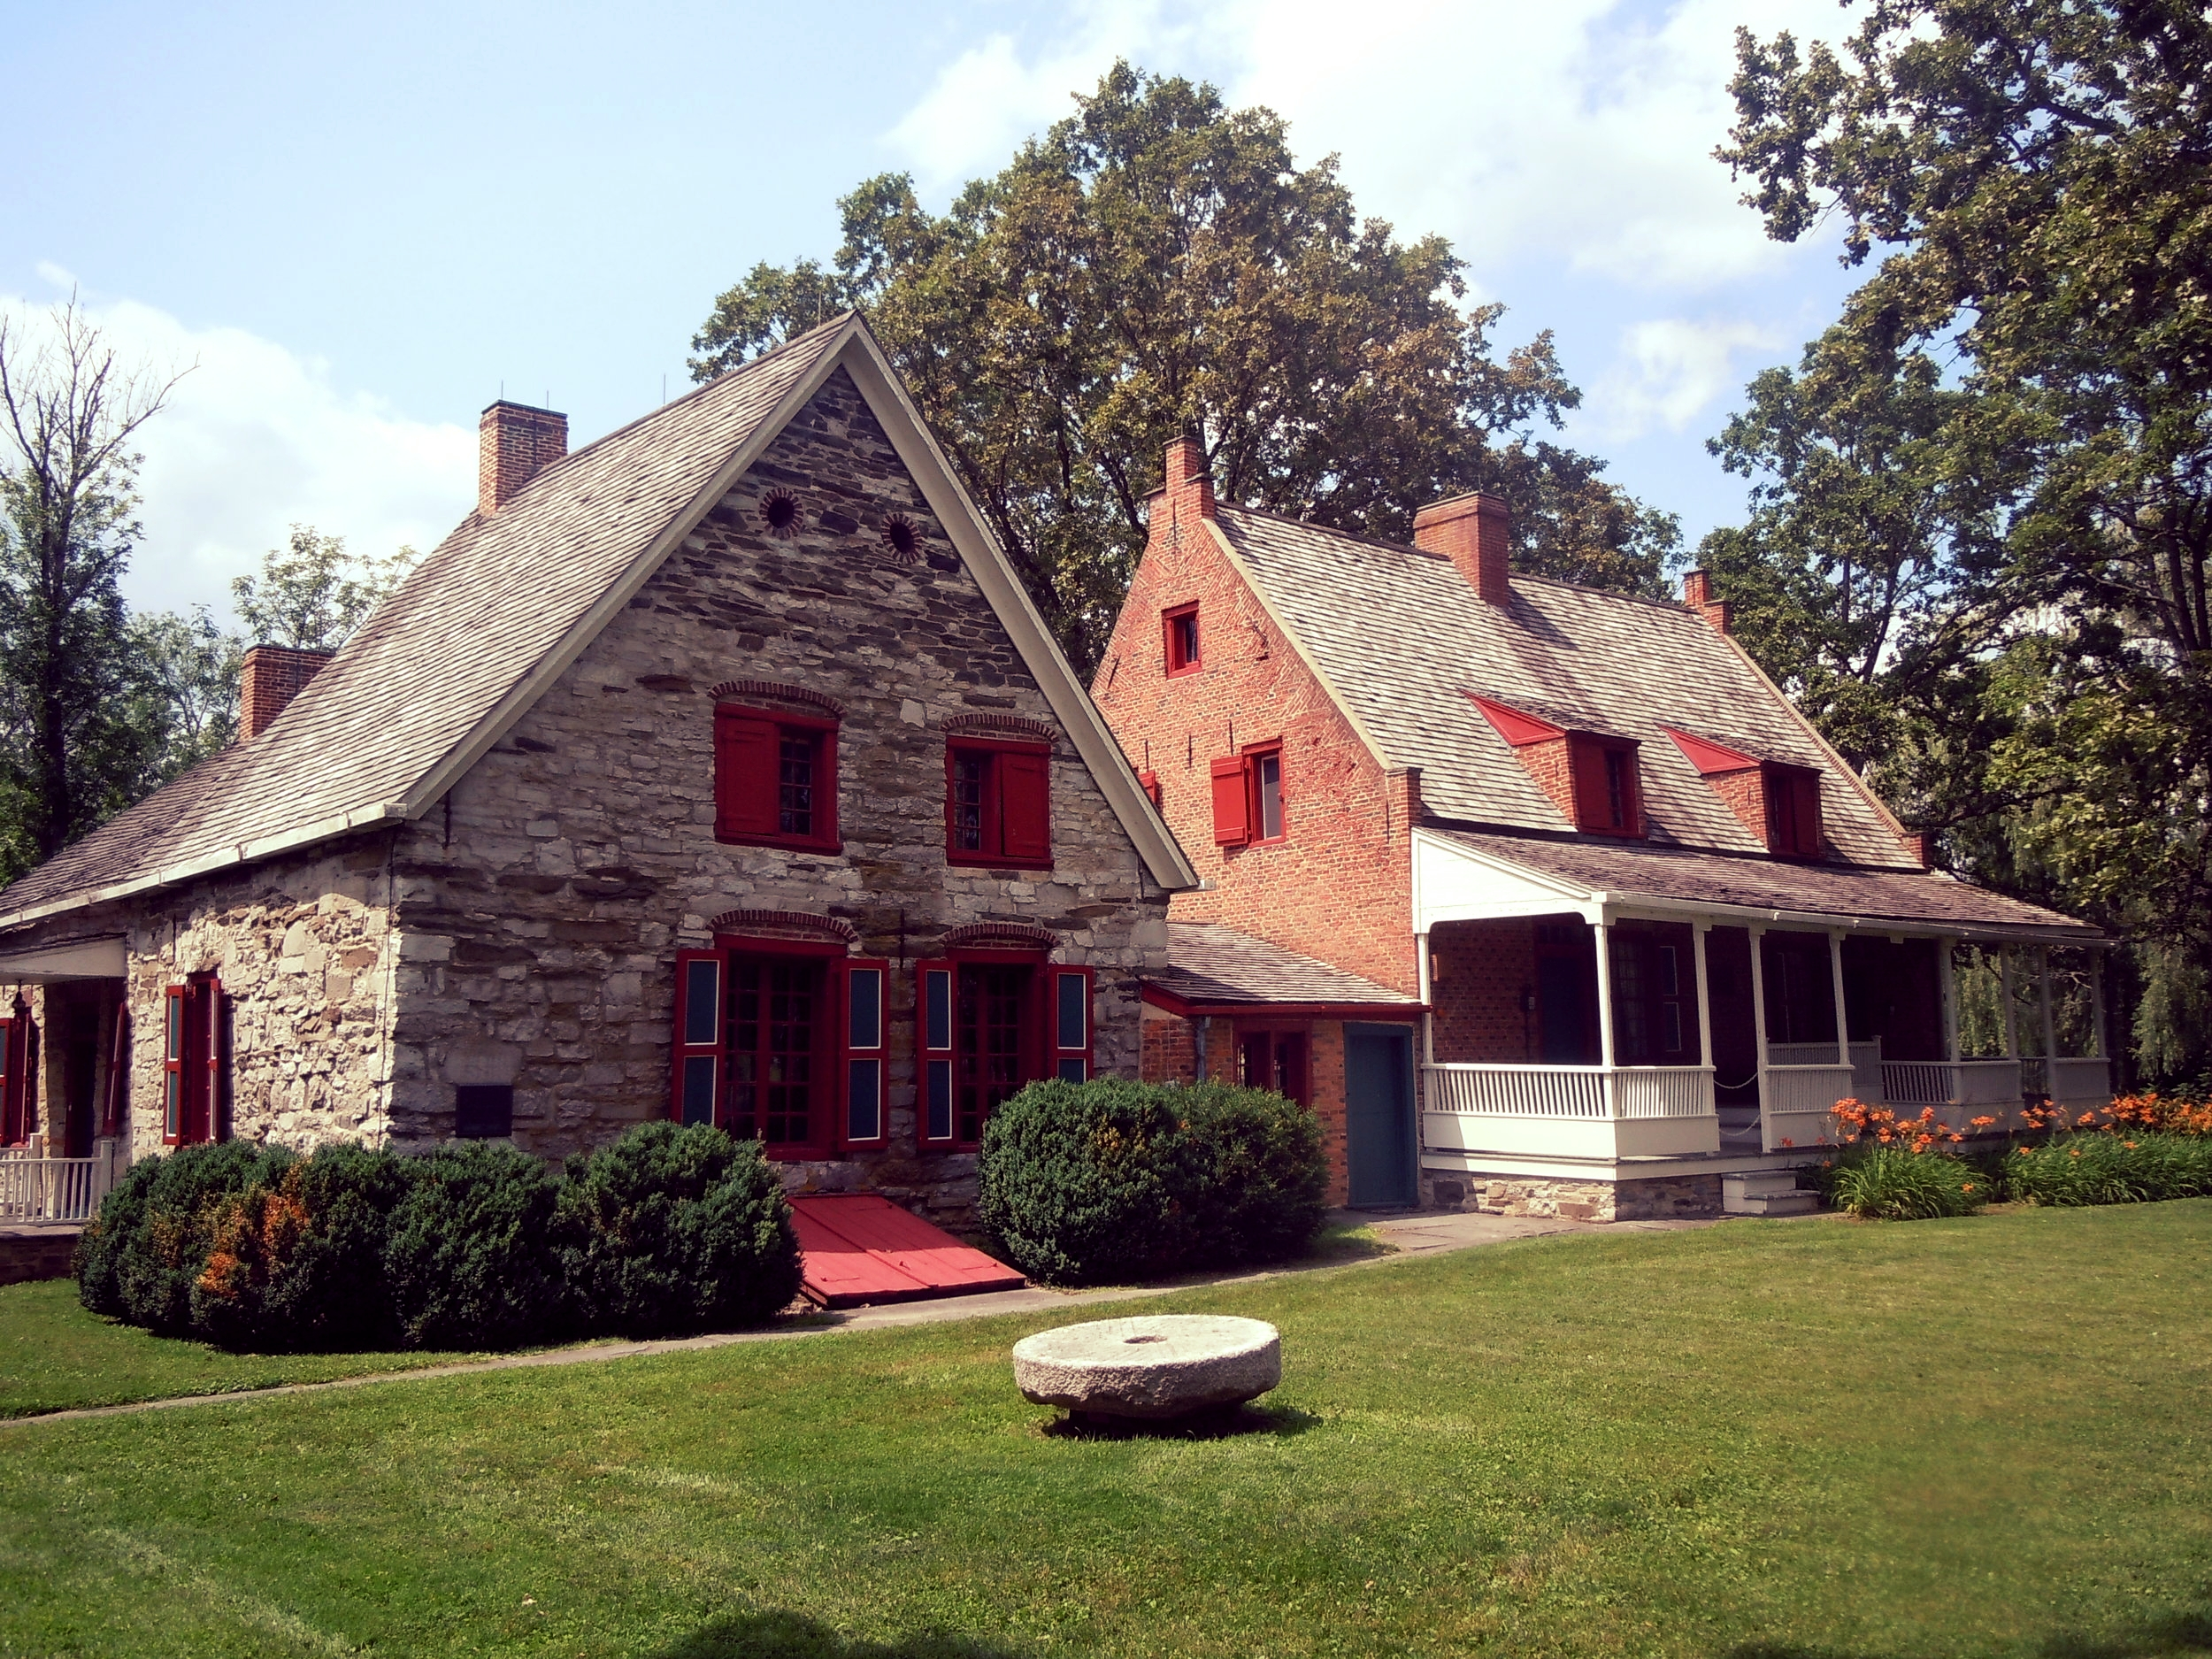 Bronck House Museum - The oldest home in Upstate New York and headquarters of GCHS is open for tours annually May - October.